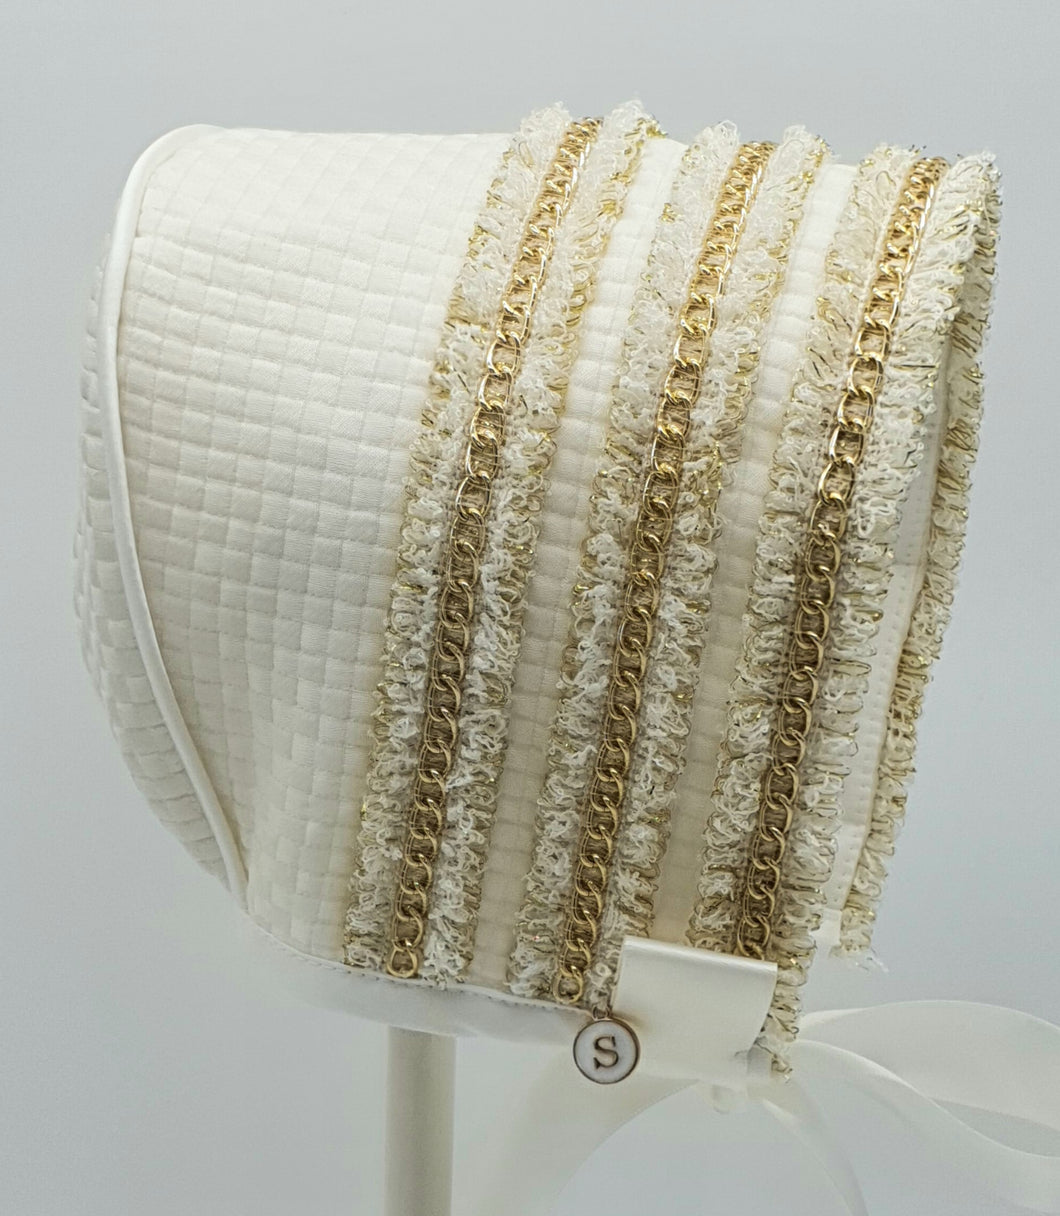 Exclusive Bonnet, Ivory Checkerboard Jacquard with Gold Chain Trim